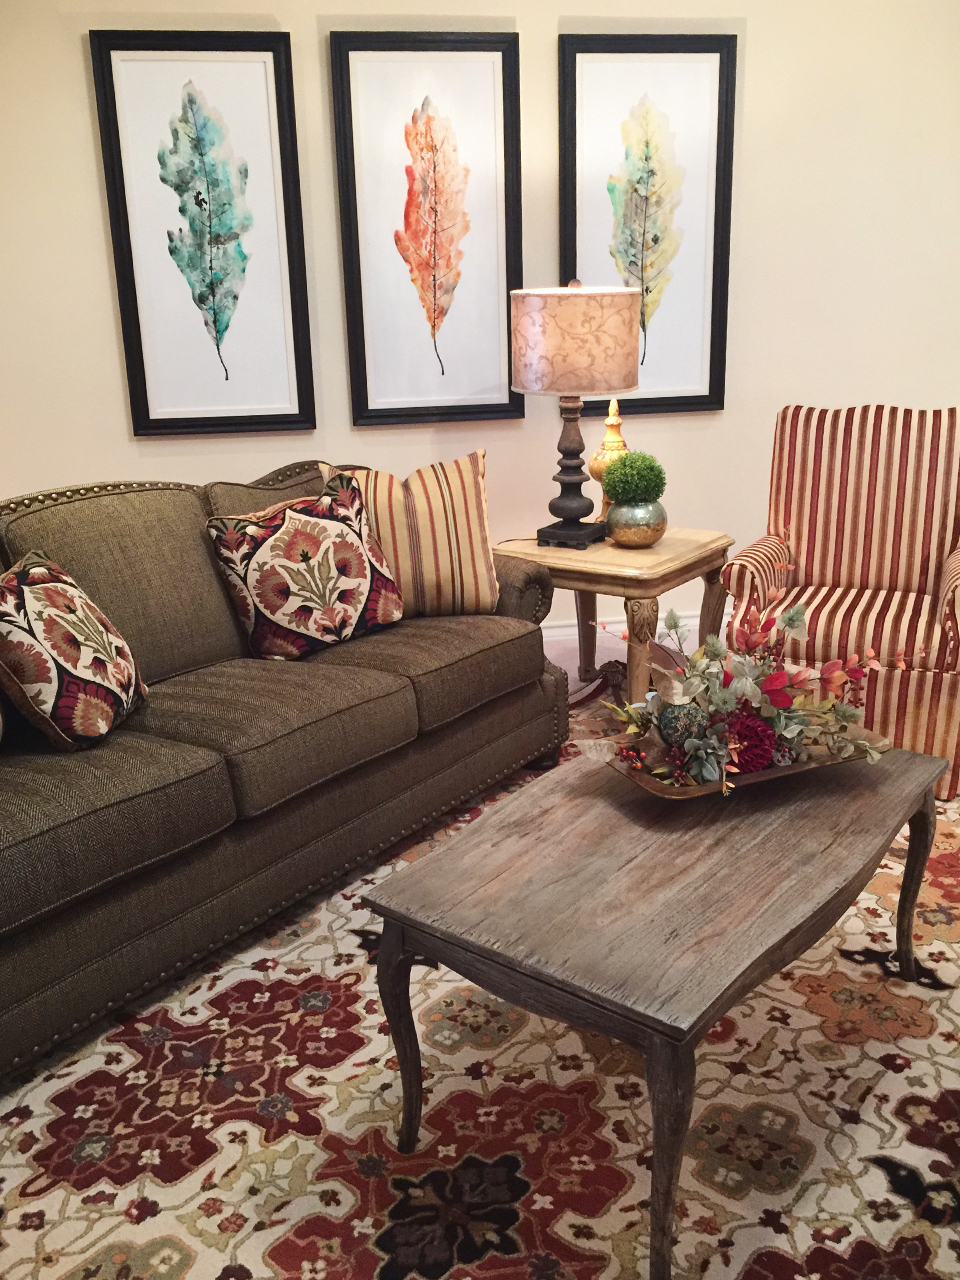 Home Decorating by B. Whimsy